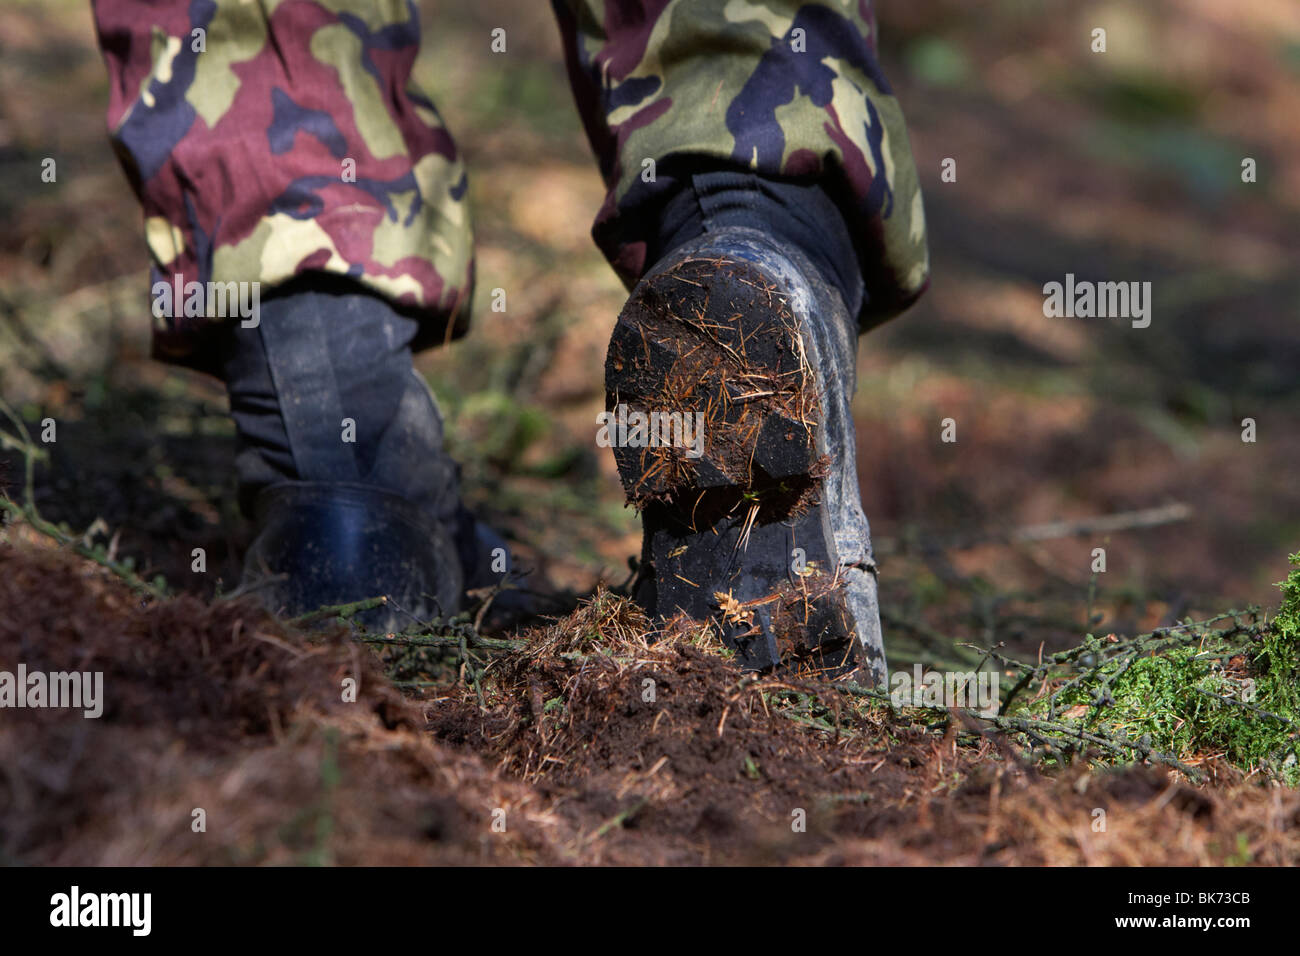 man wearing camouflage combat trousers and boots carefully walking forwards in a forest in the uk - Stock Image